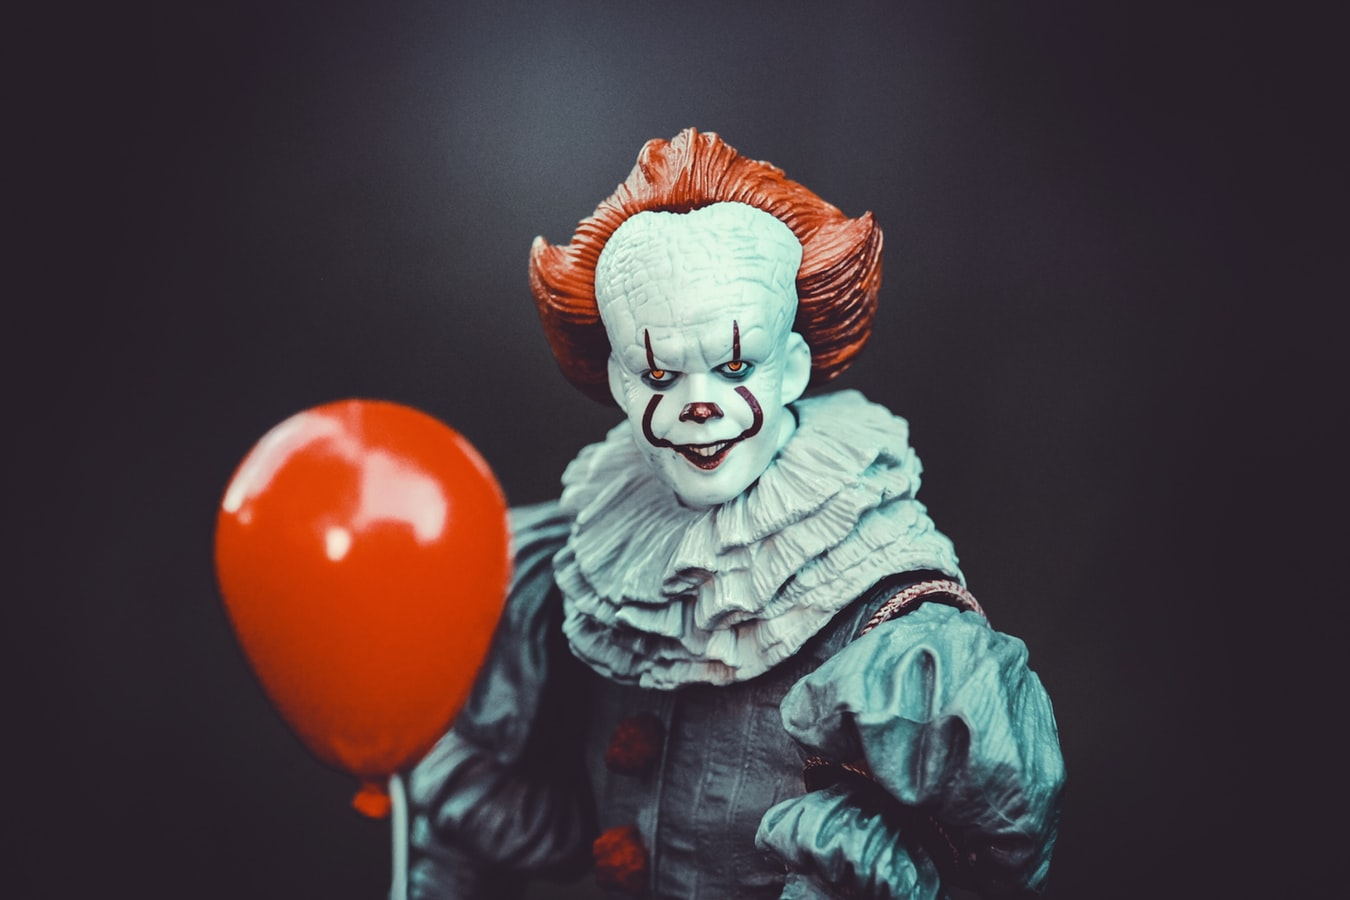 clown with red balloon